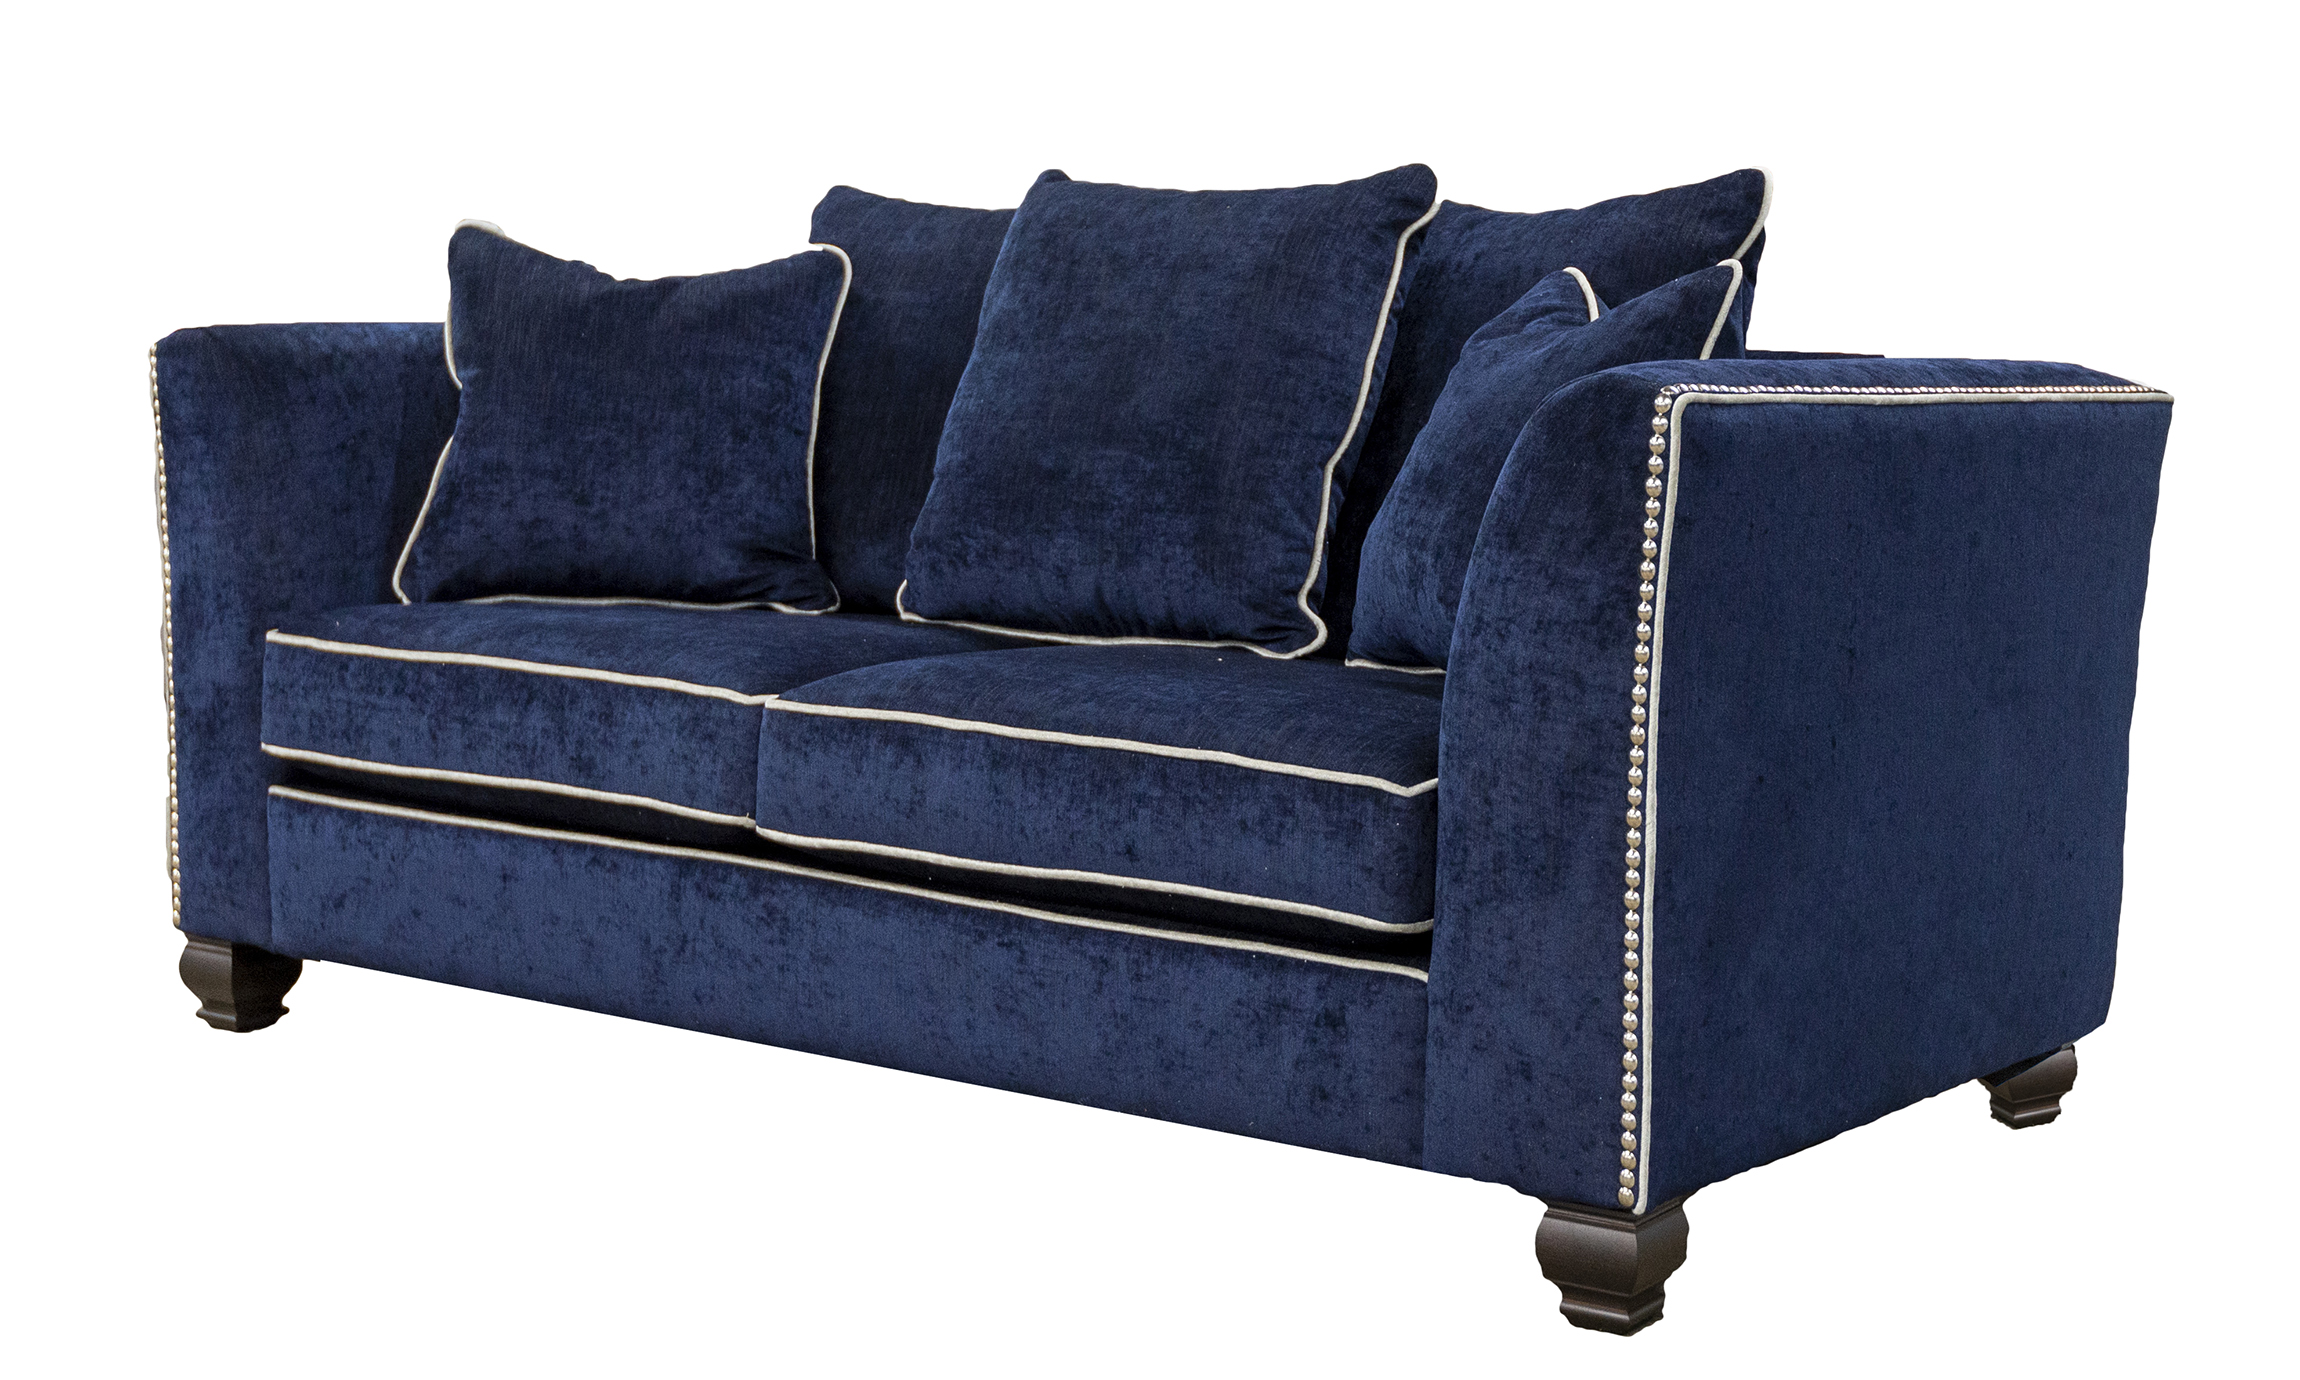 Grenoble 3 Seater Sofa in Edinburgh Carbon, Silver Collection Fabric